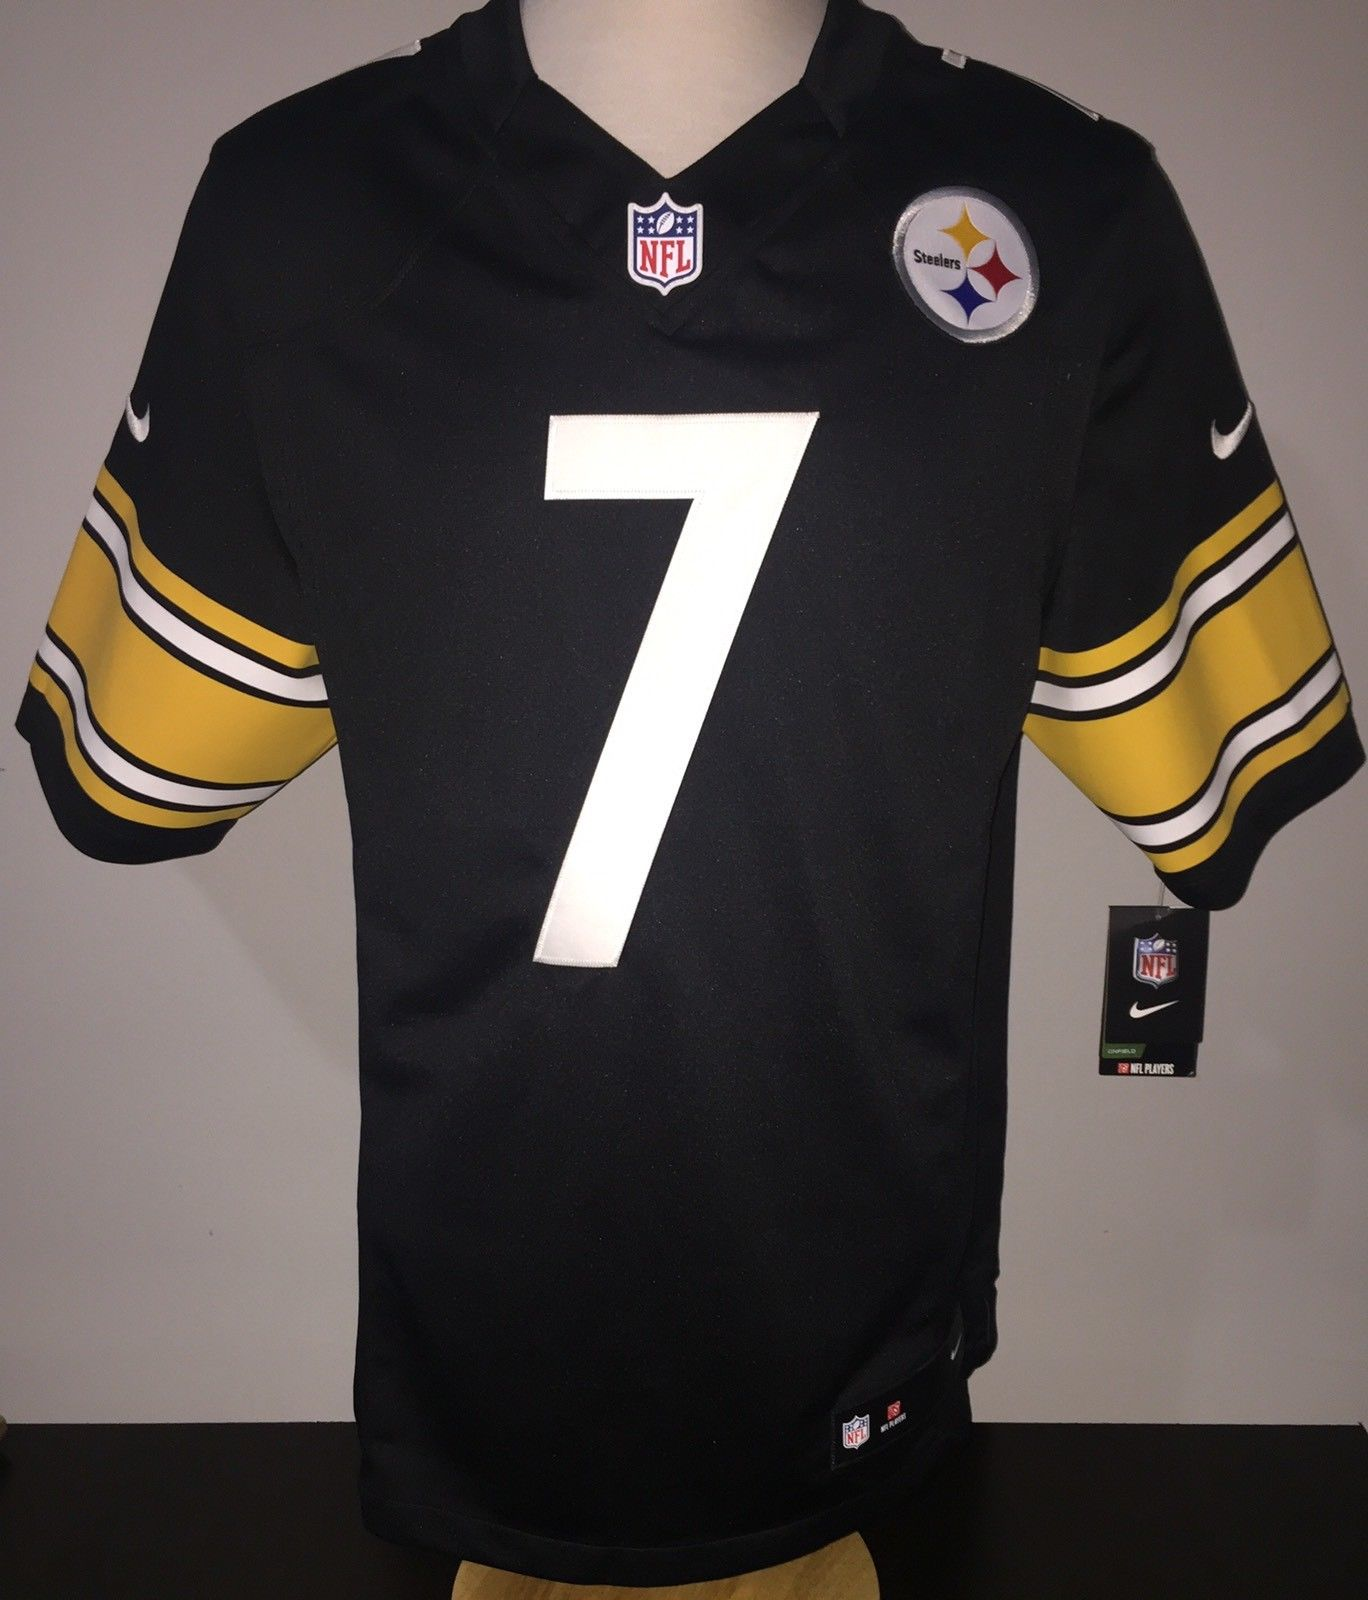 New 2018 Nike NFL Pittsburgh Steelers Ben Roethlisberger #7 Game Edition Jersey